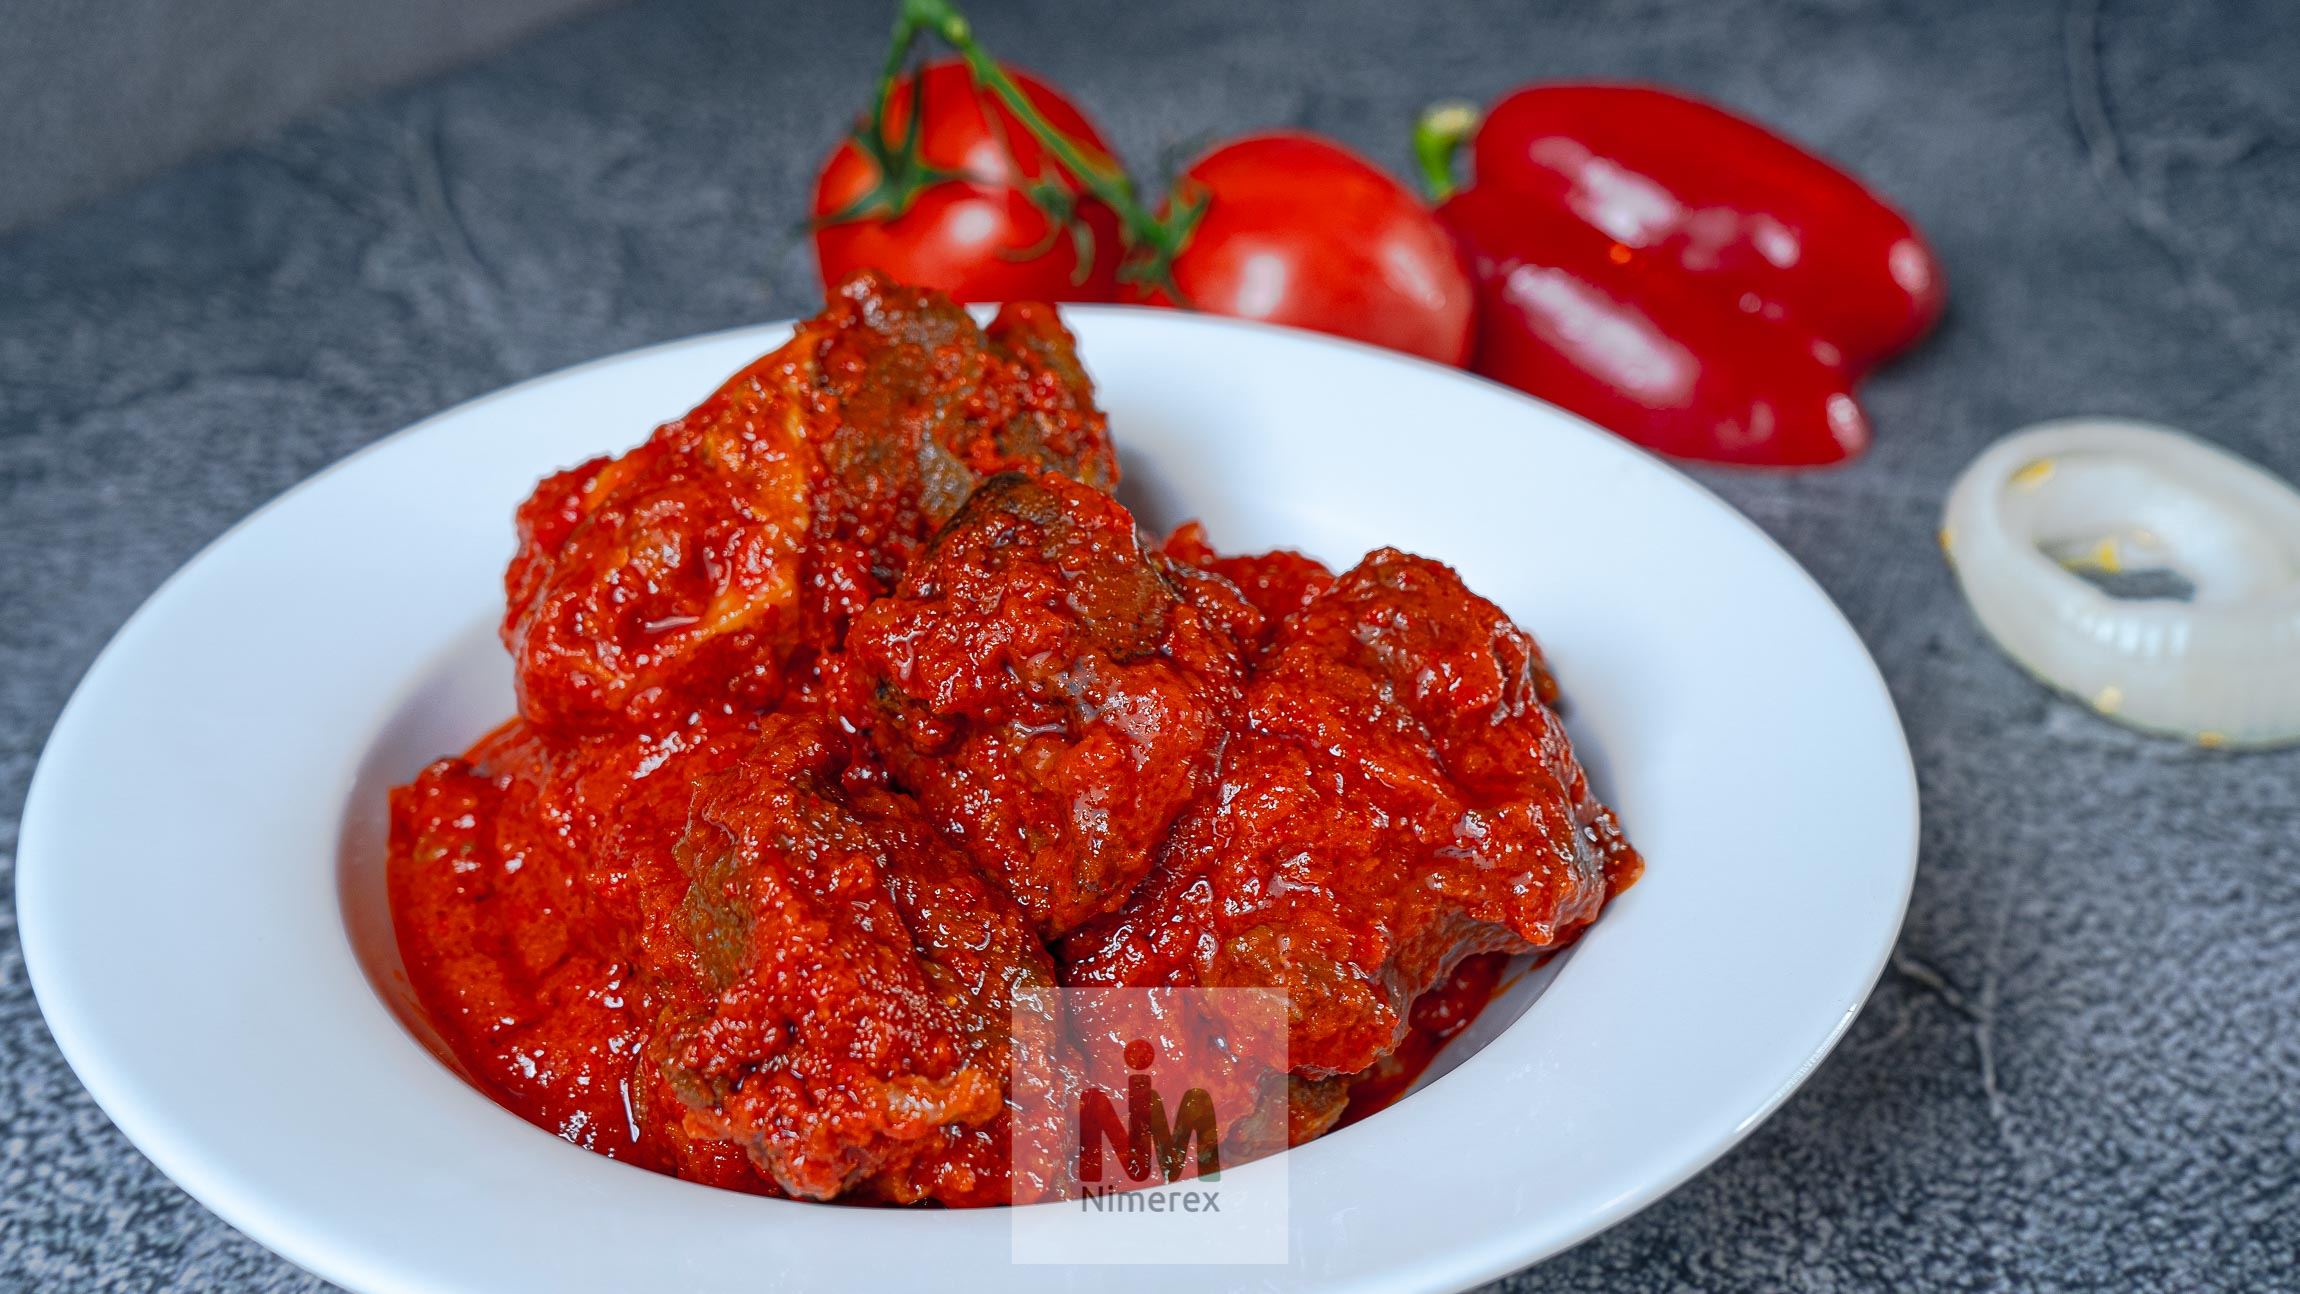 Nimerex launches Goat Meat Stew delivery to homes across America. Check on nimerex.com 1